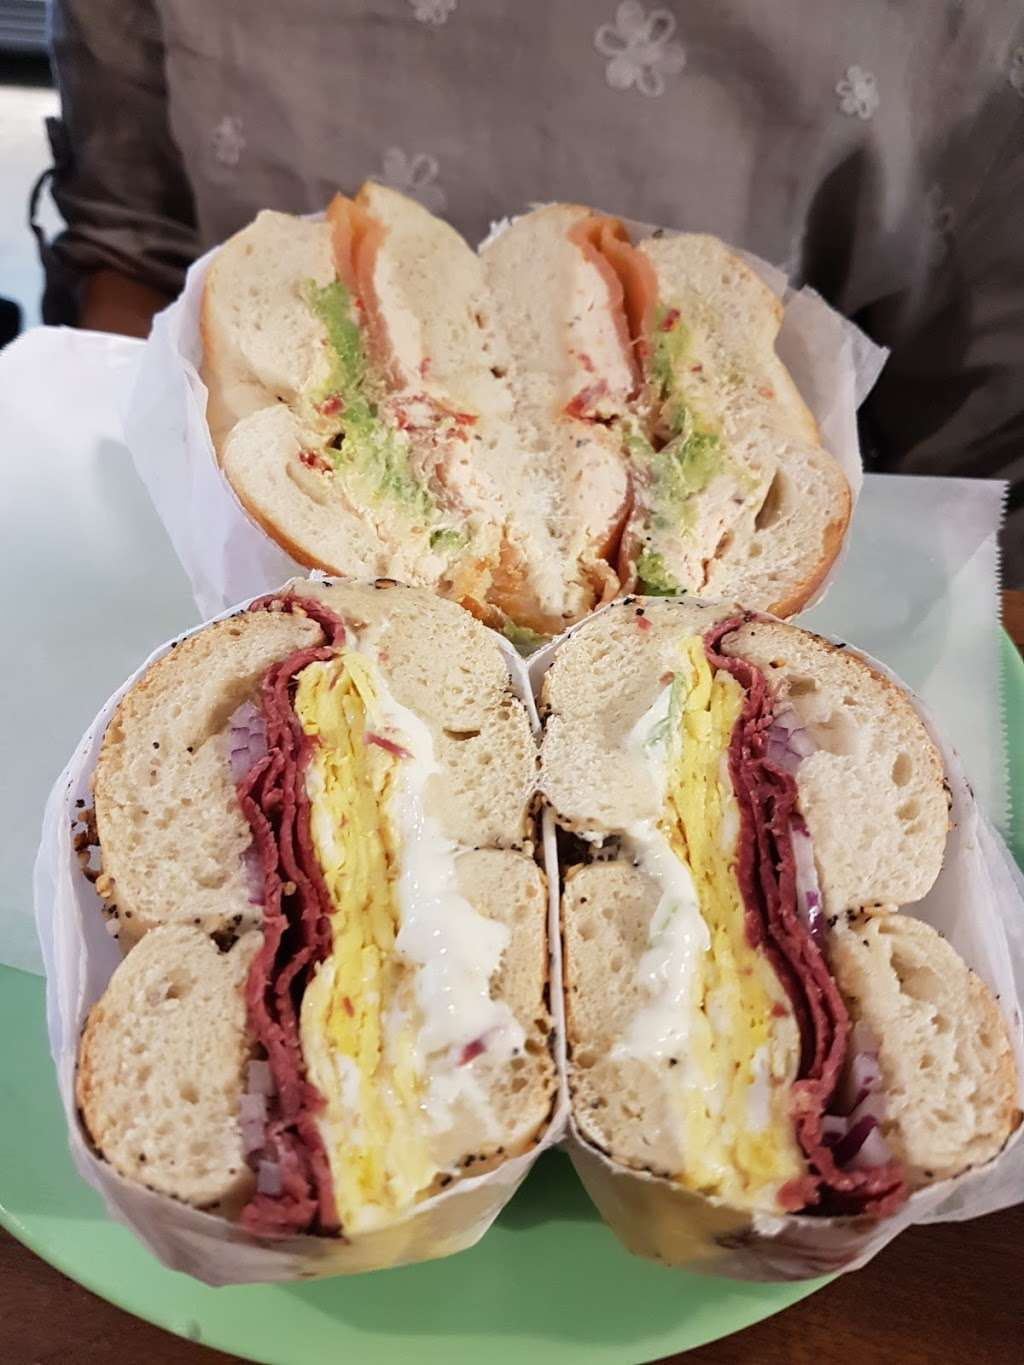 Tompkins Square Bagels - cafe  | Photo 4 of 10 | Address: 165 Avenue A, New York, NY 10009, USA | Phone: (646) 351-6520